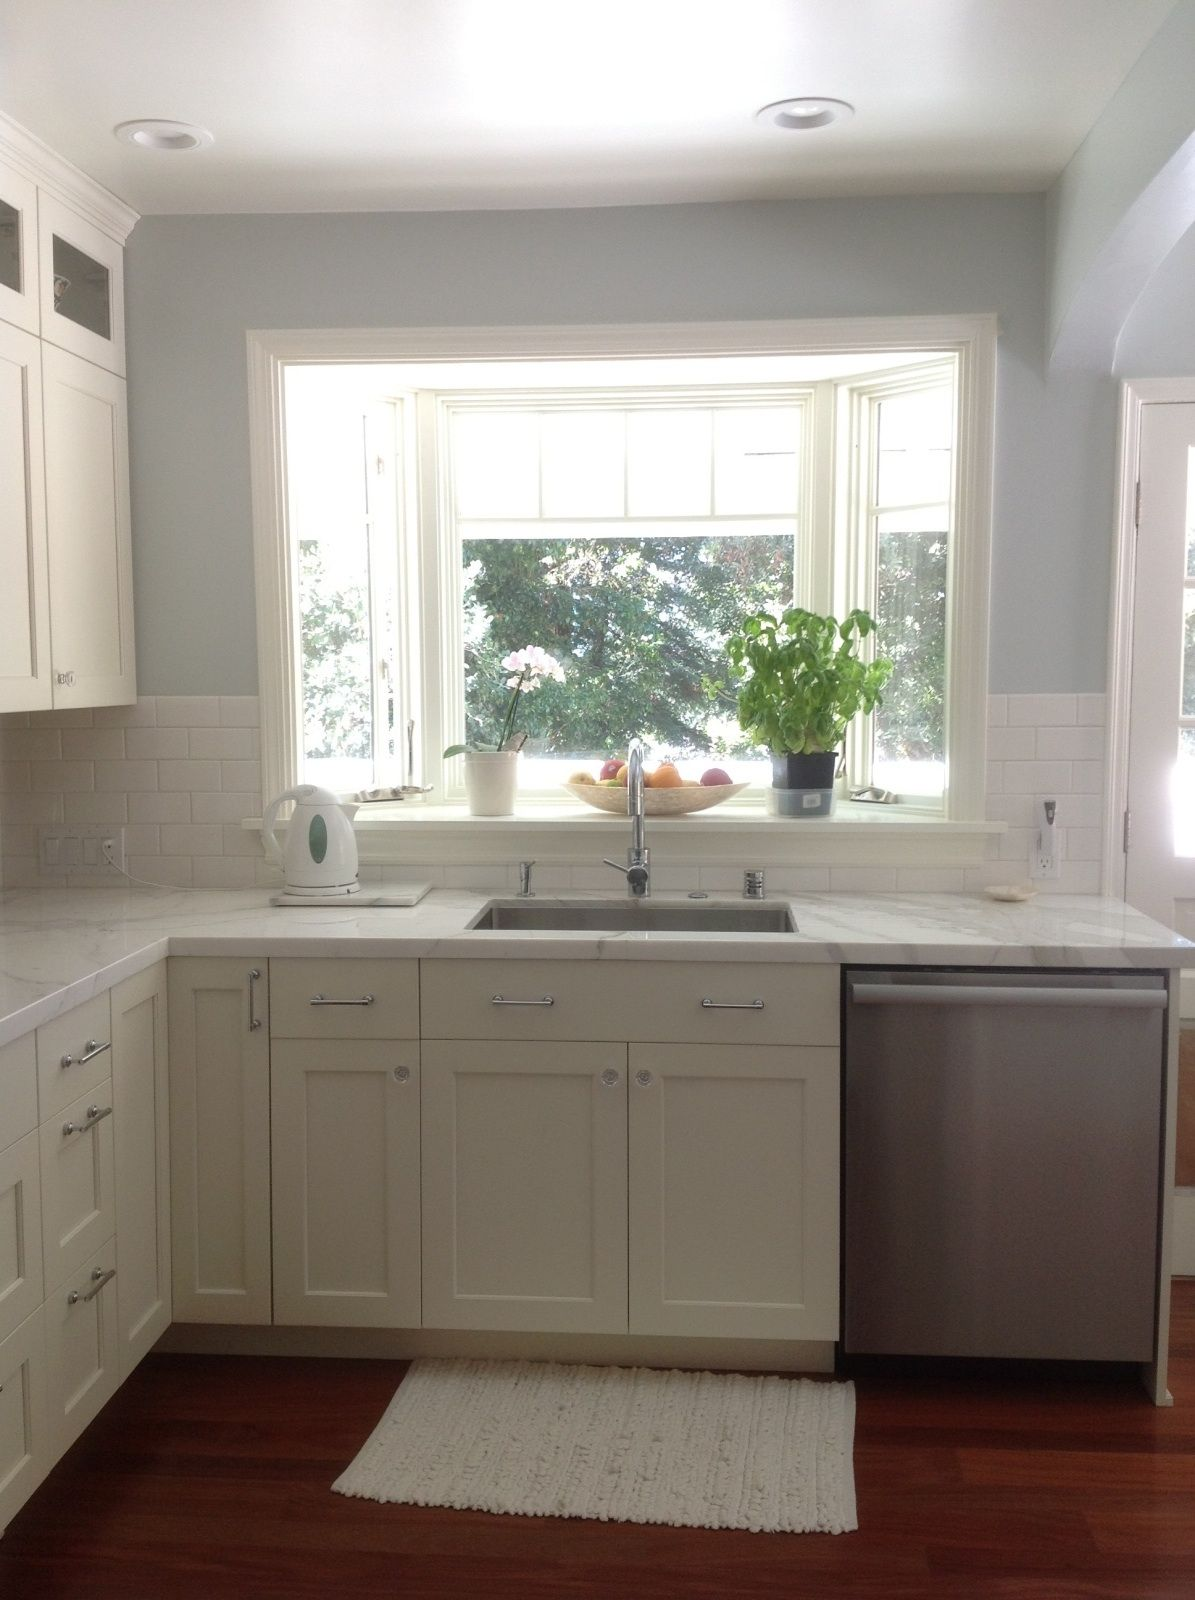 Save For Future Kitchen And House Renovation Ideas I Like Placement Of Back Door